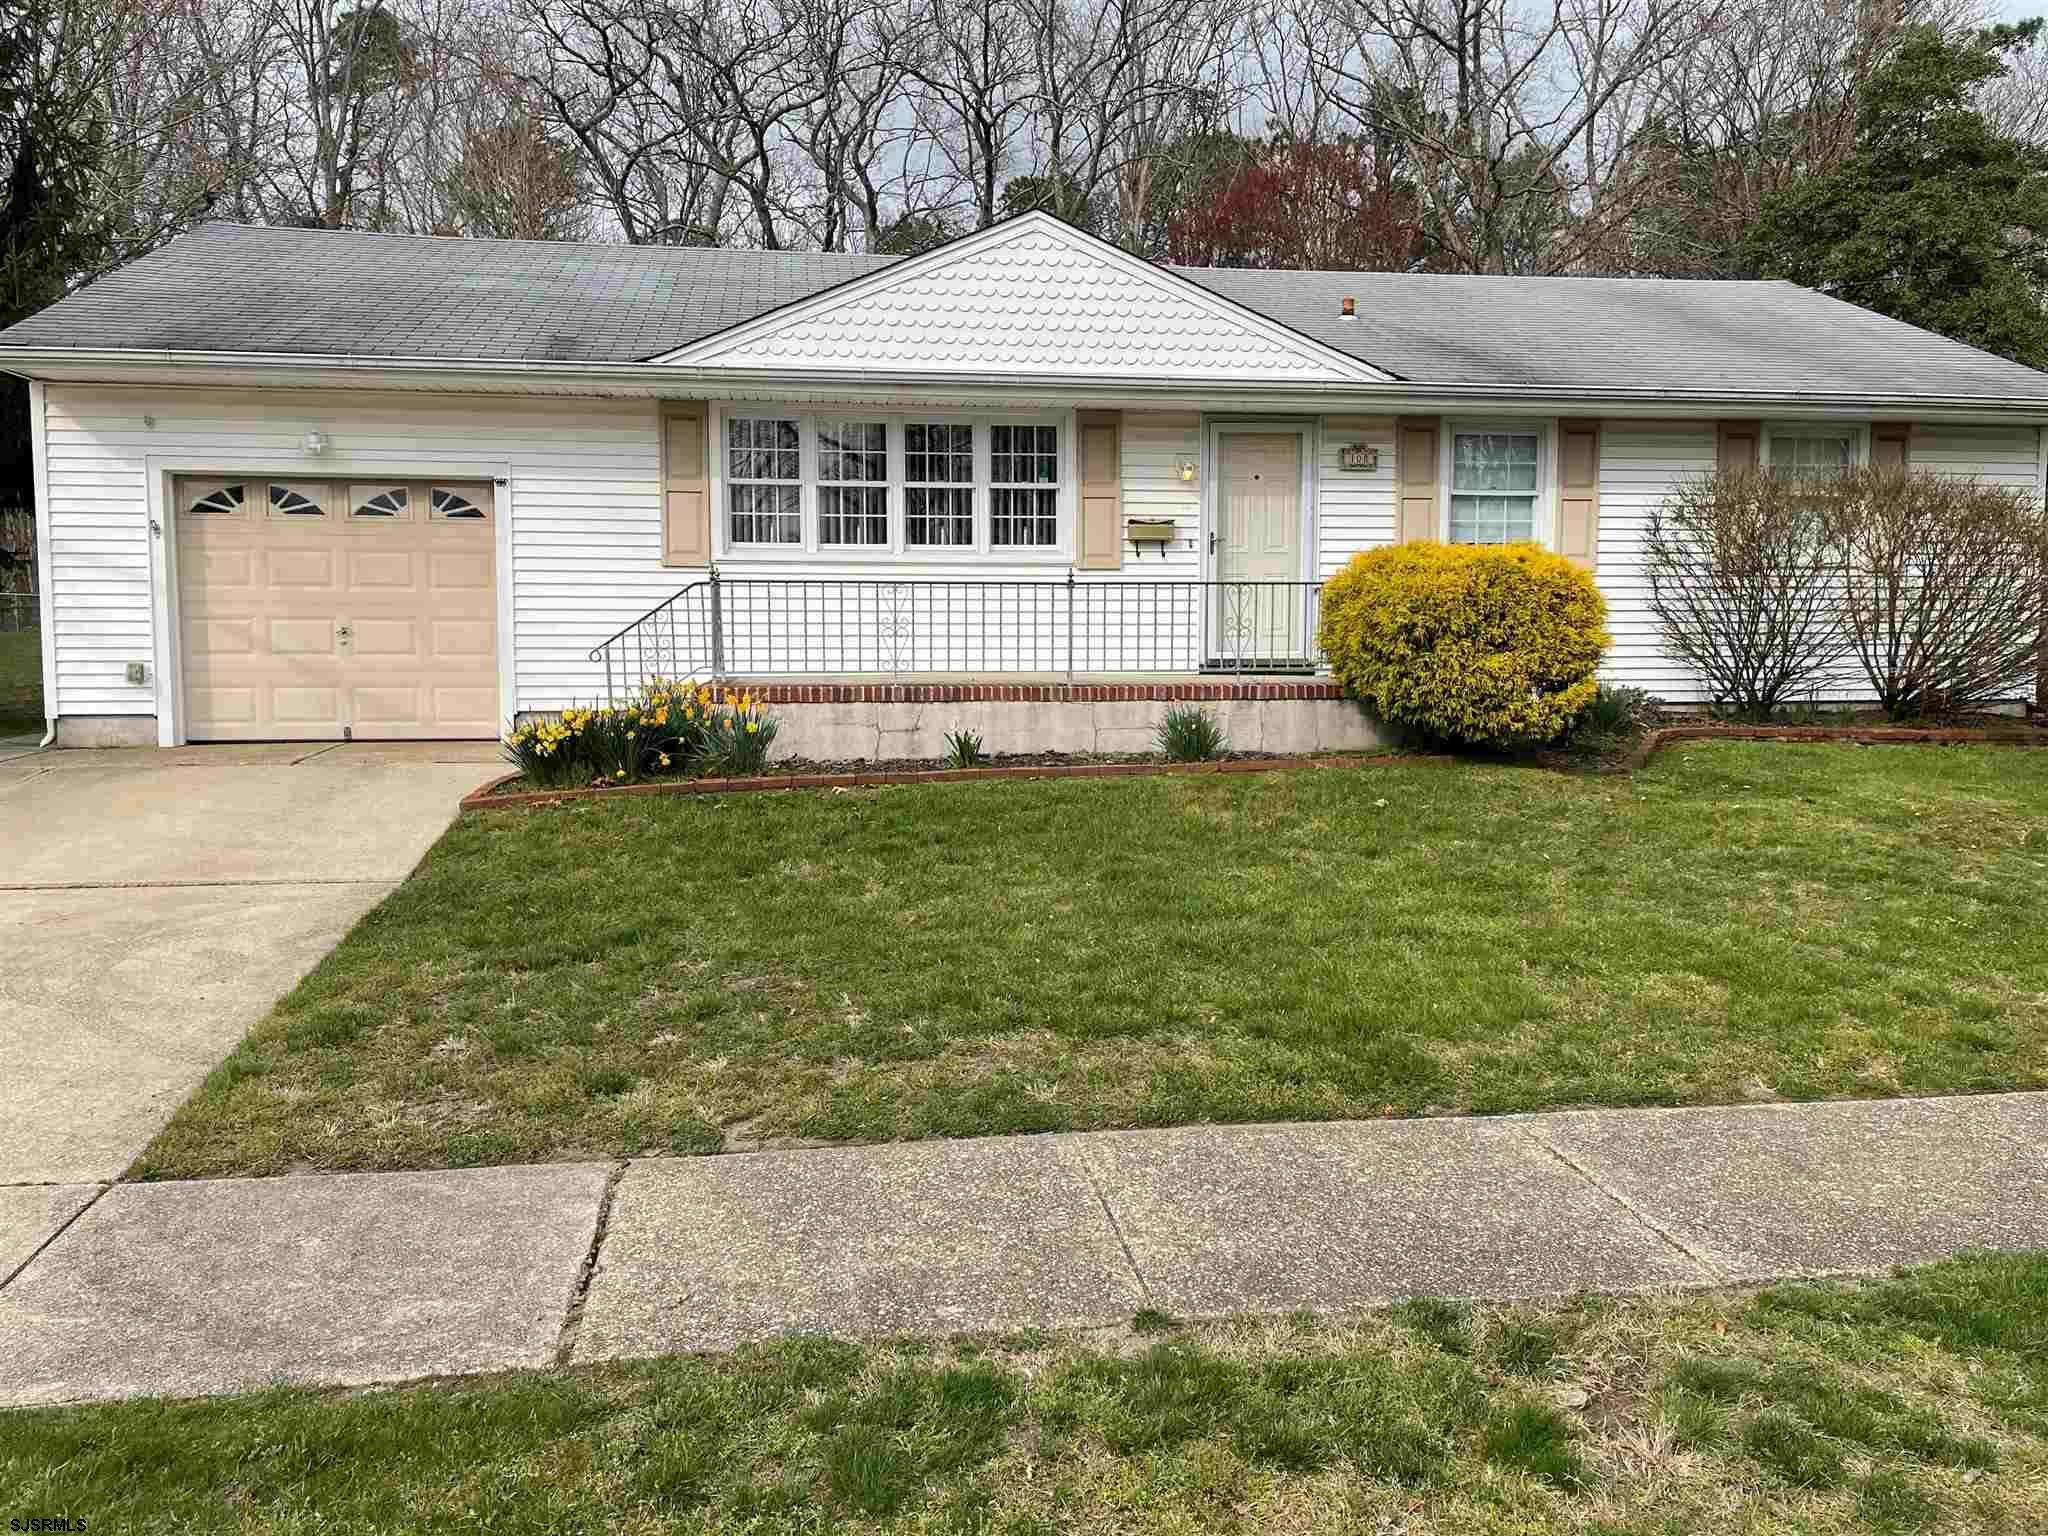 Great Starter Home located on a nice residential street close to everything. This rancher features a